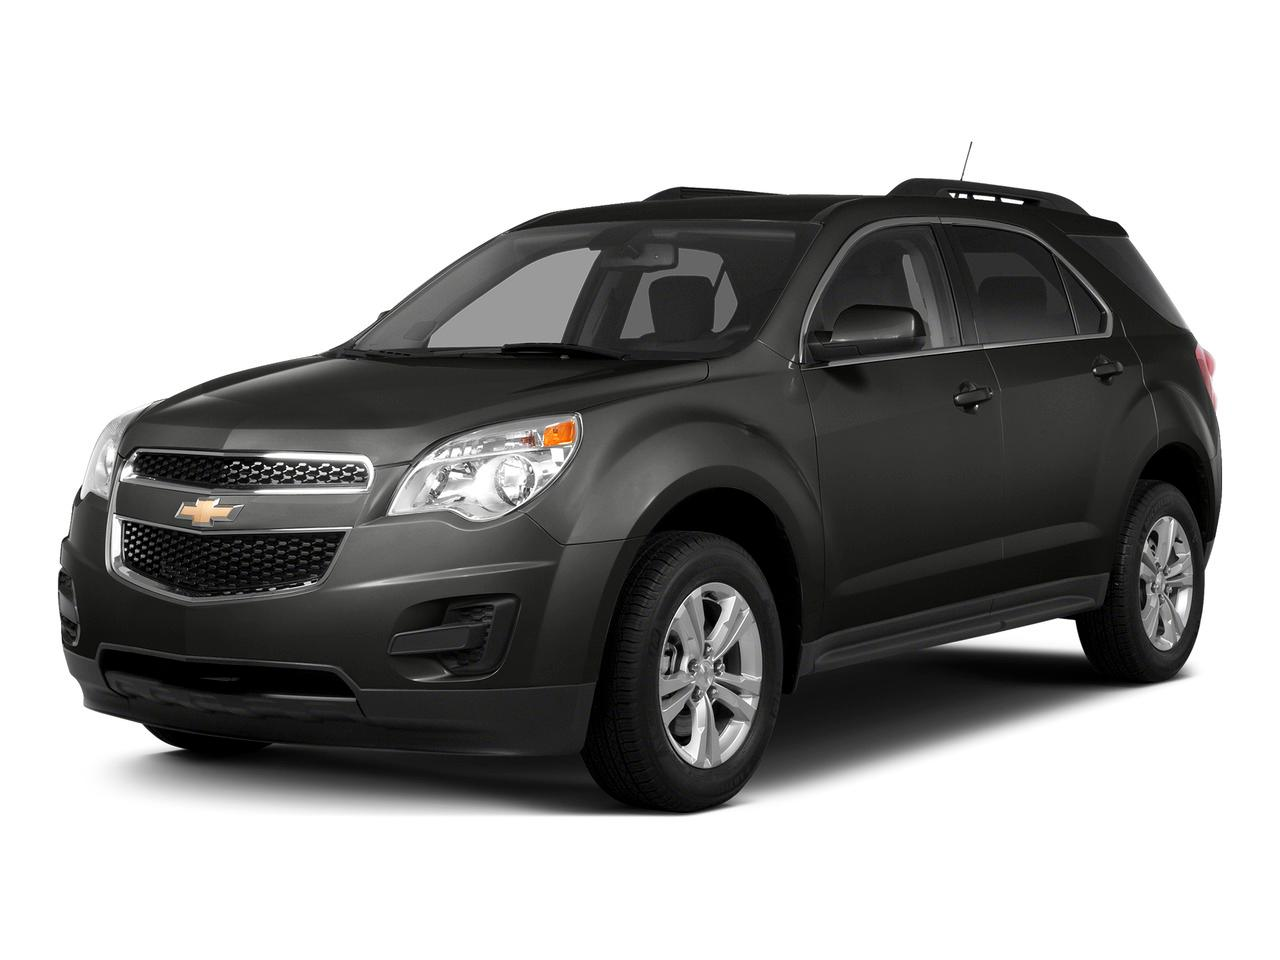 2015 Chevrolet Equinox Vehicle Photo in Plainfield, IL 60586